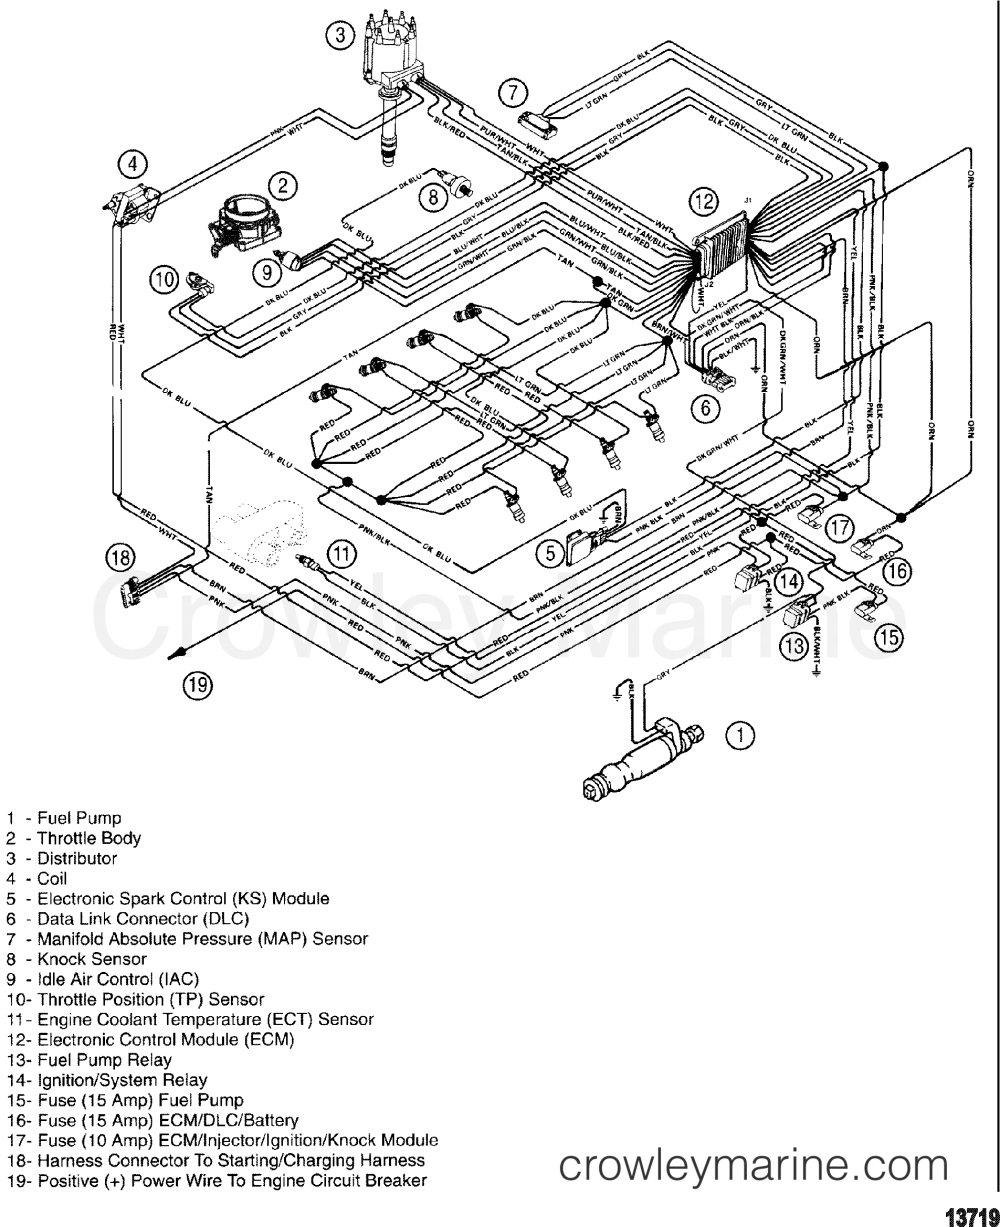 medium resolution of mercruiser 350 wiring diagram wiring diagram schematics rh 3 2 schlaglicht regional de mercruiser 350 starter wiring diagram mercruiser 350 alternator